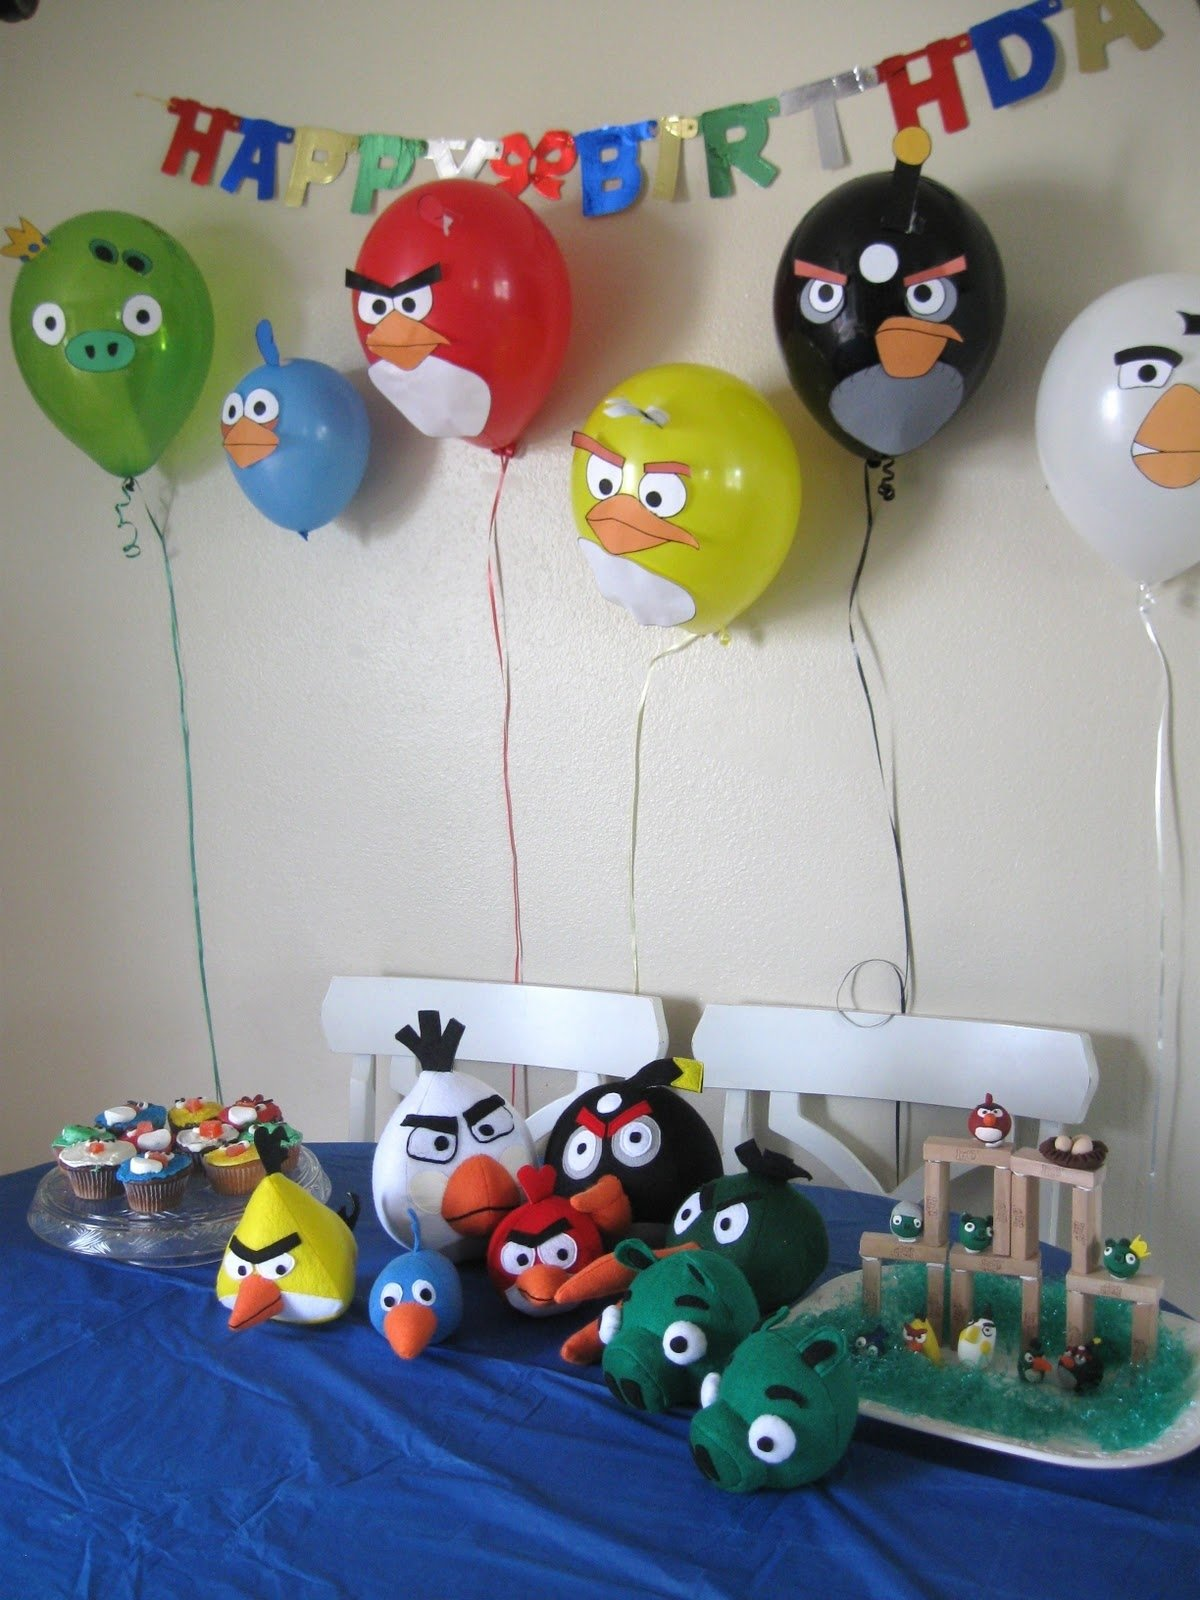 10 Most Recommended 5 Yr Old Boy Birthday Party Ideas angry birds balloons jacks next birthday party idea ideas for 3